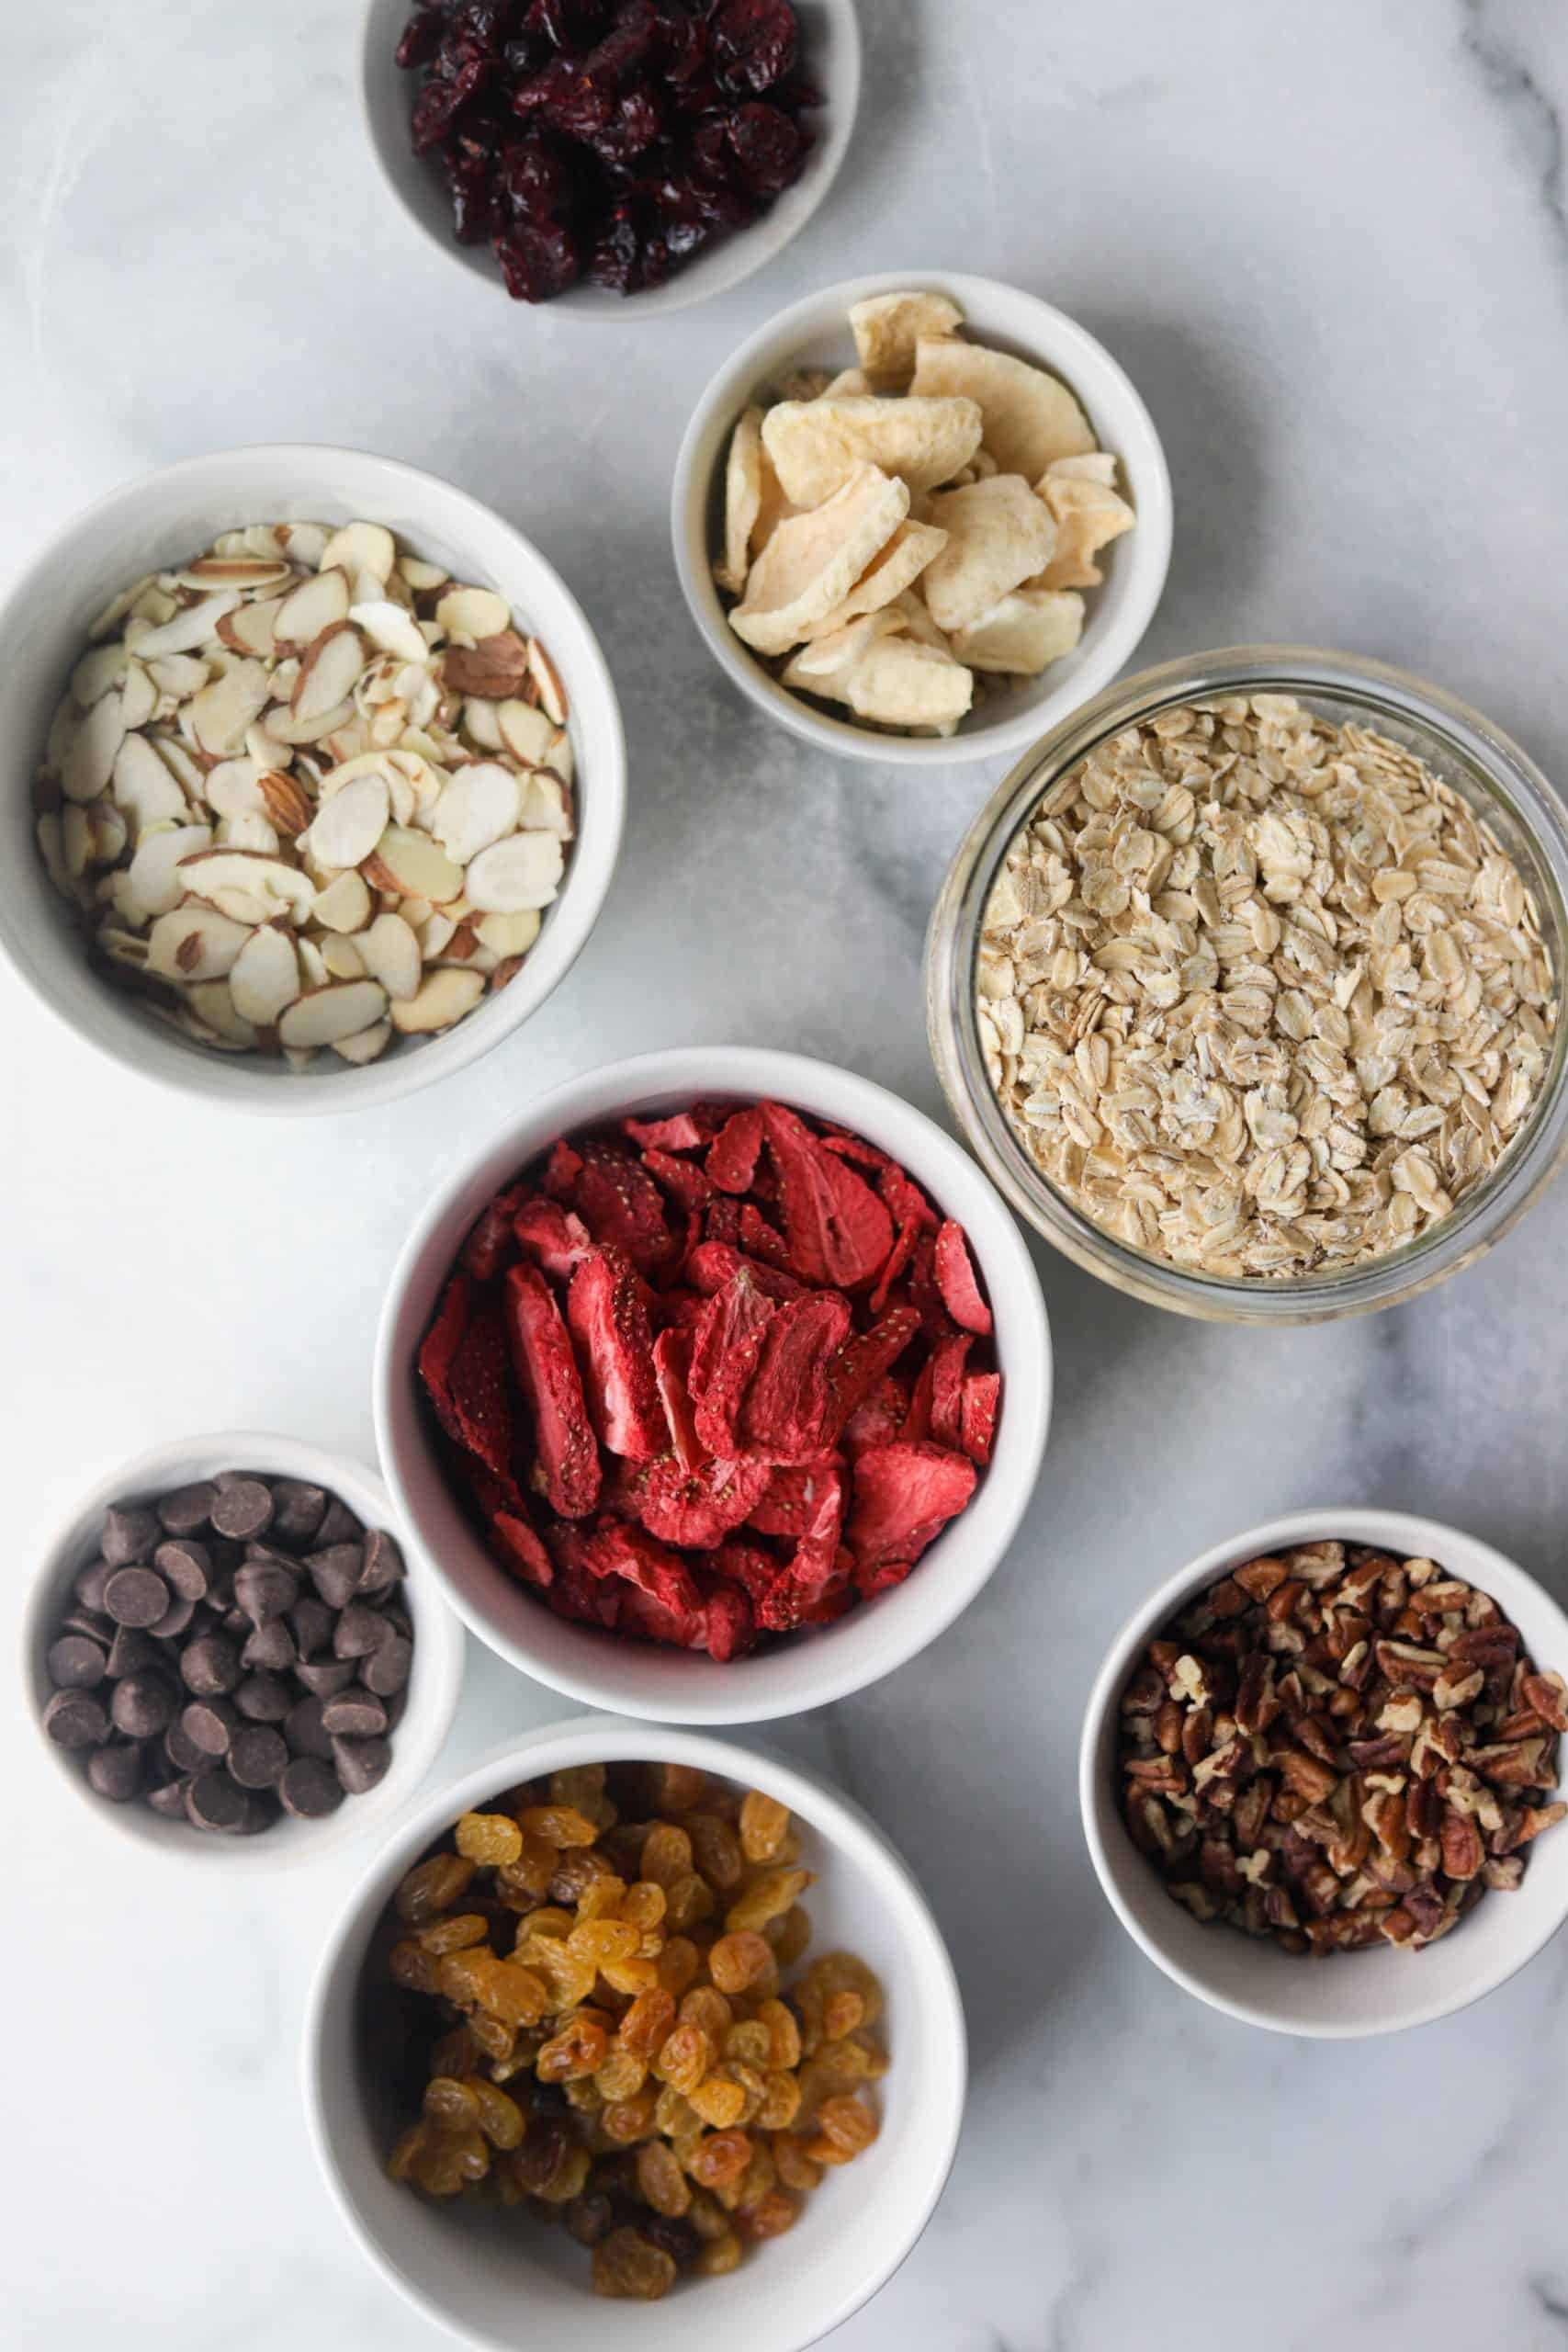 Bowls of oatmeal ingredients like dried fruit and nuts on a marble backdrop.